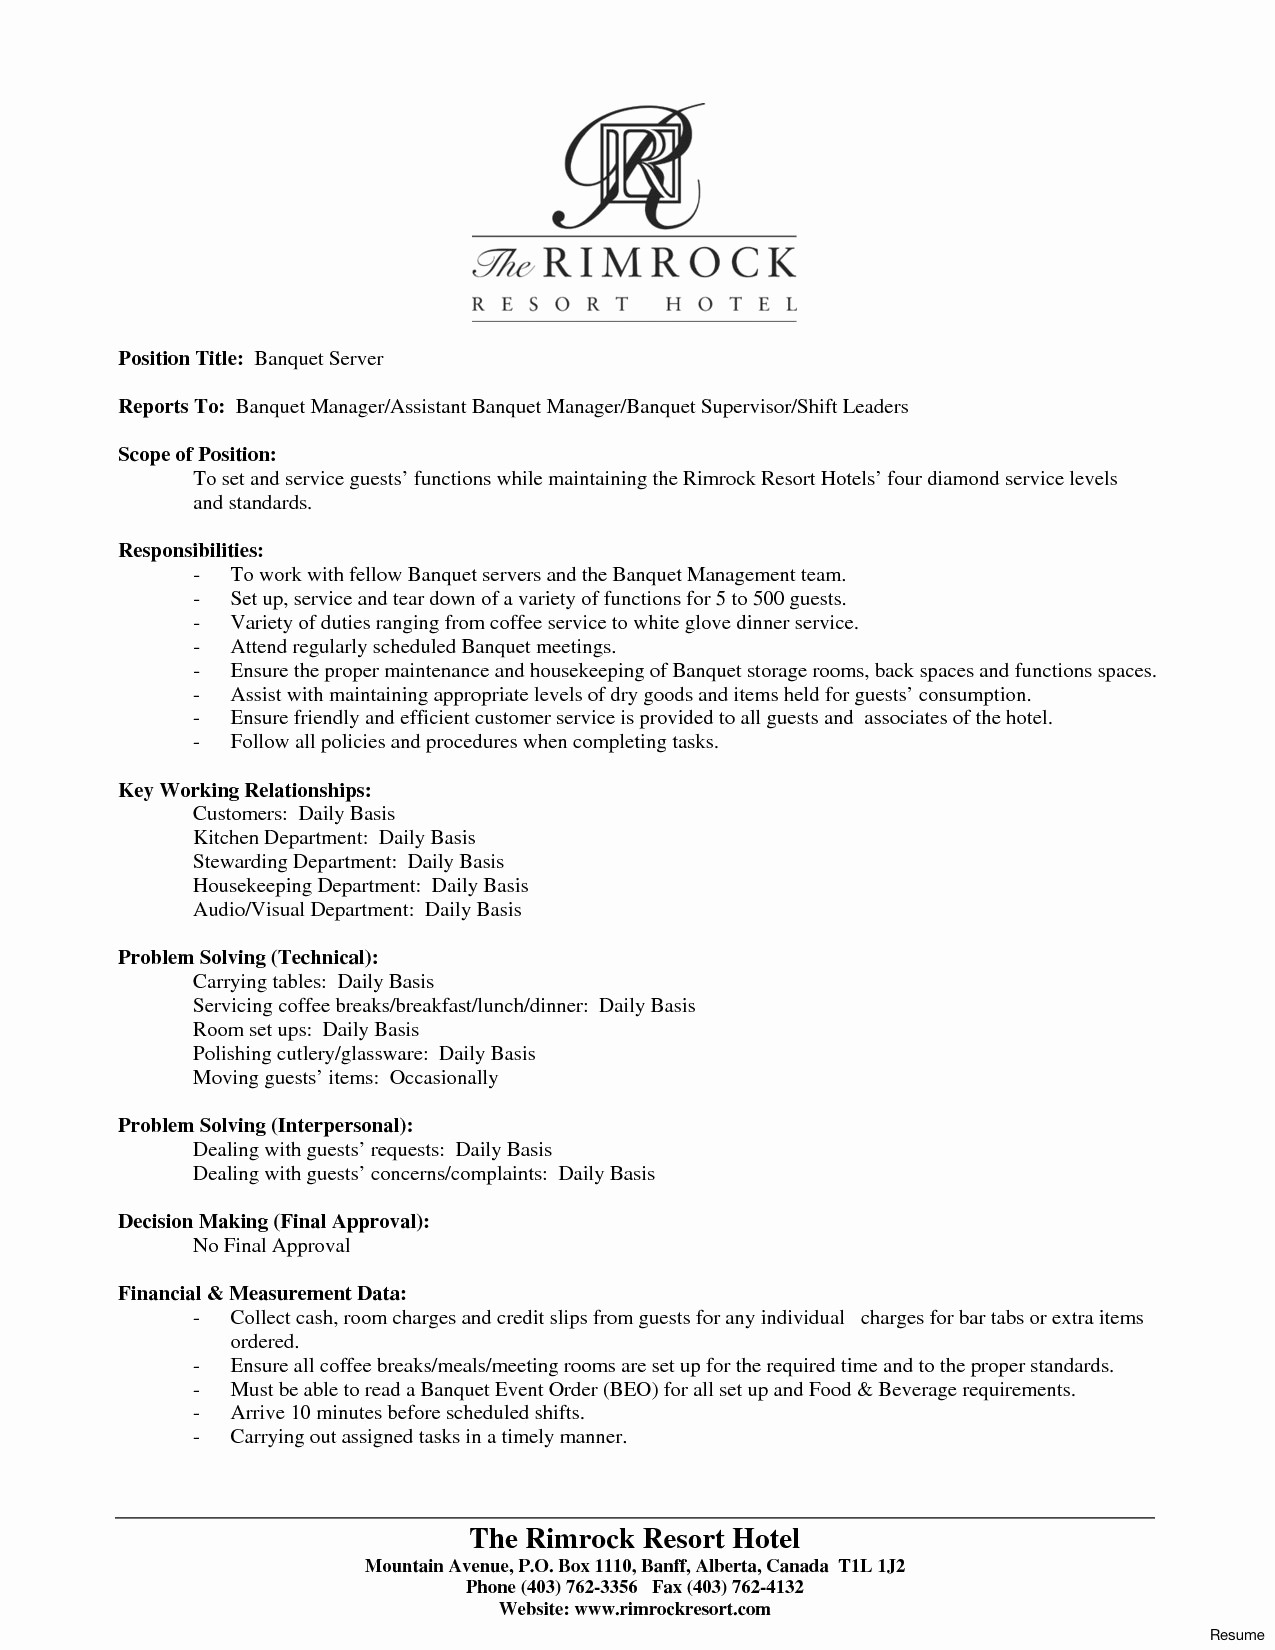 Proposal Letter Template - Writing A Proposal Letter for A Job Save Cover Letter Example for